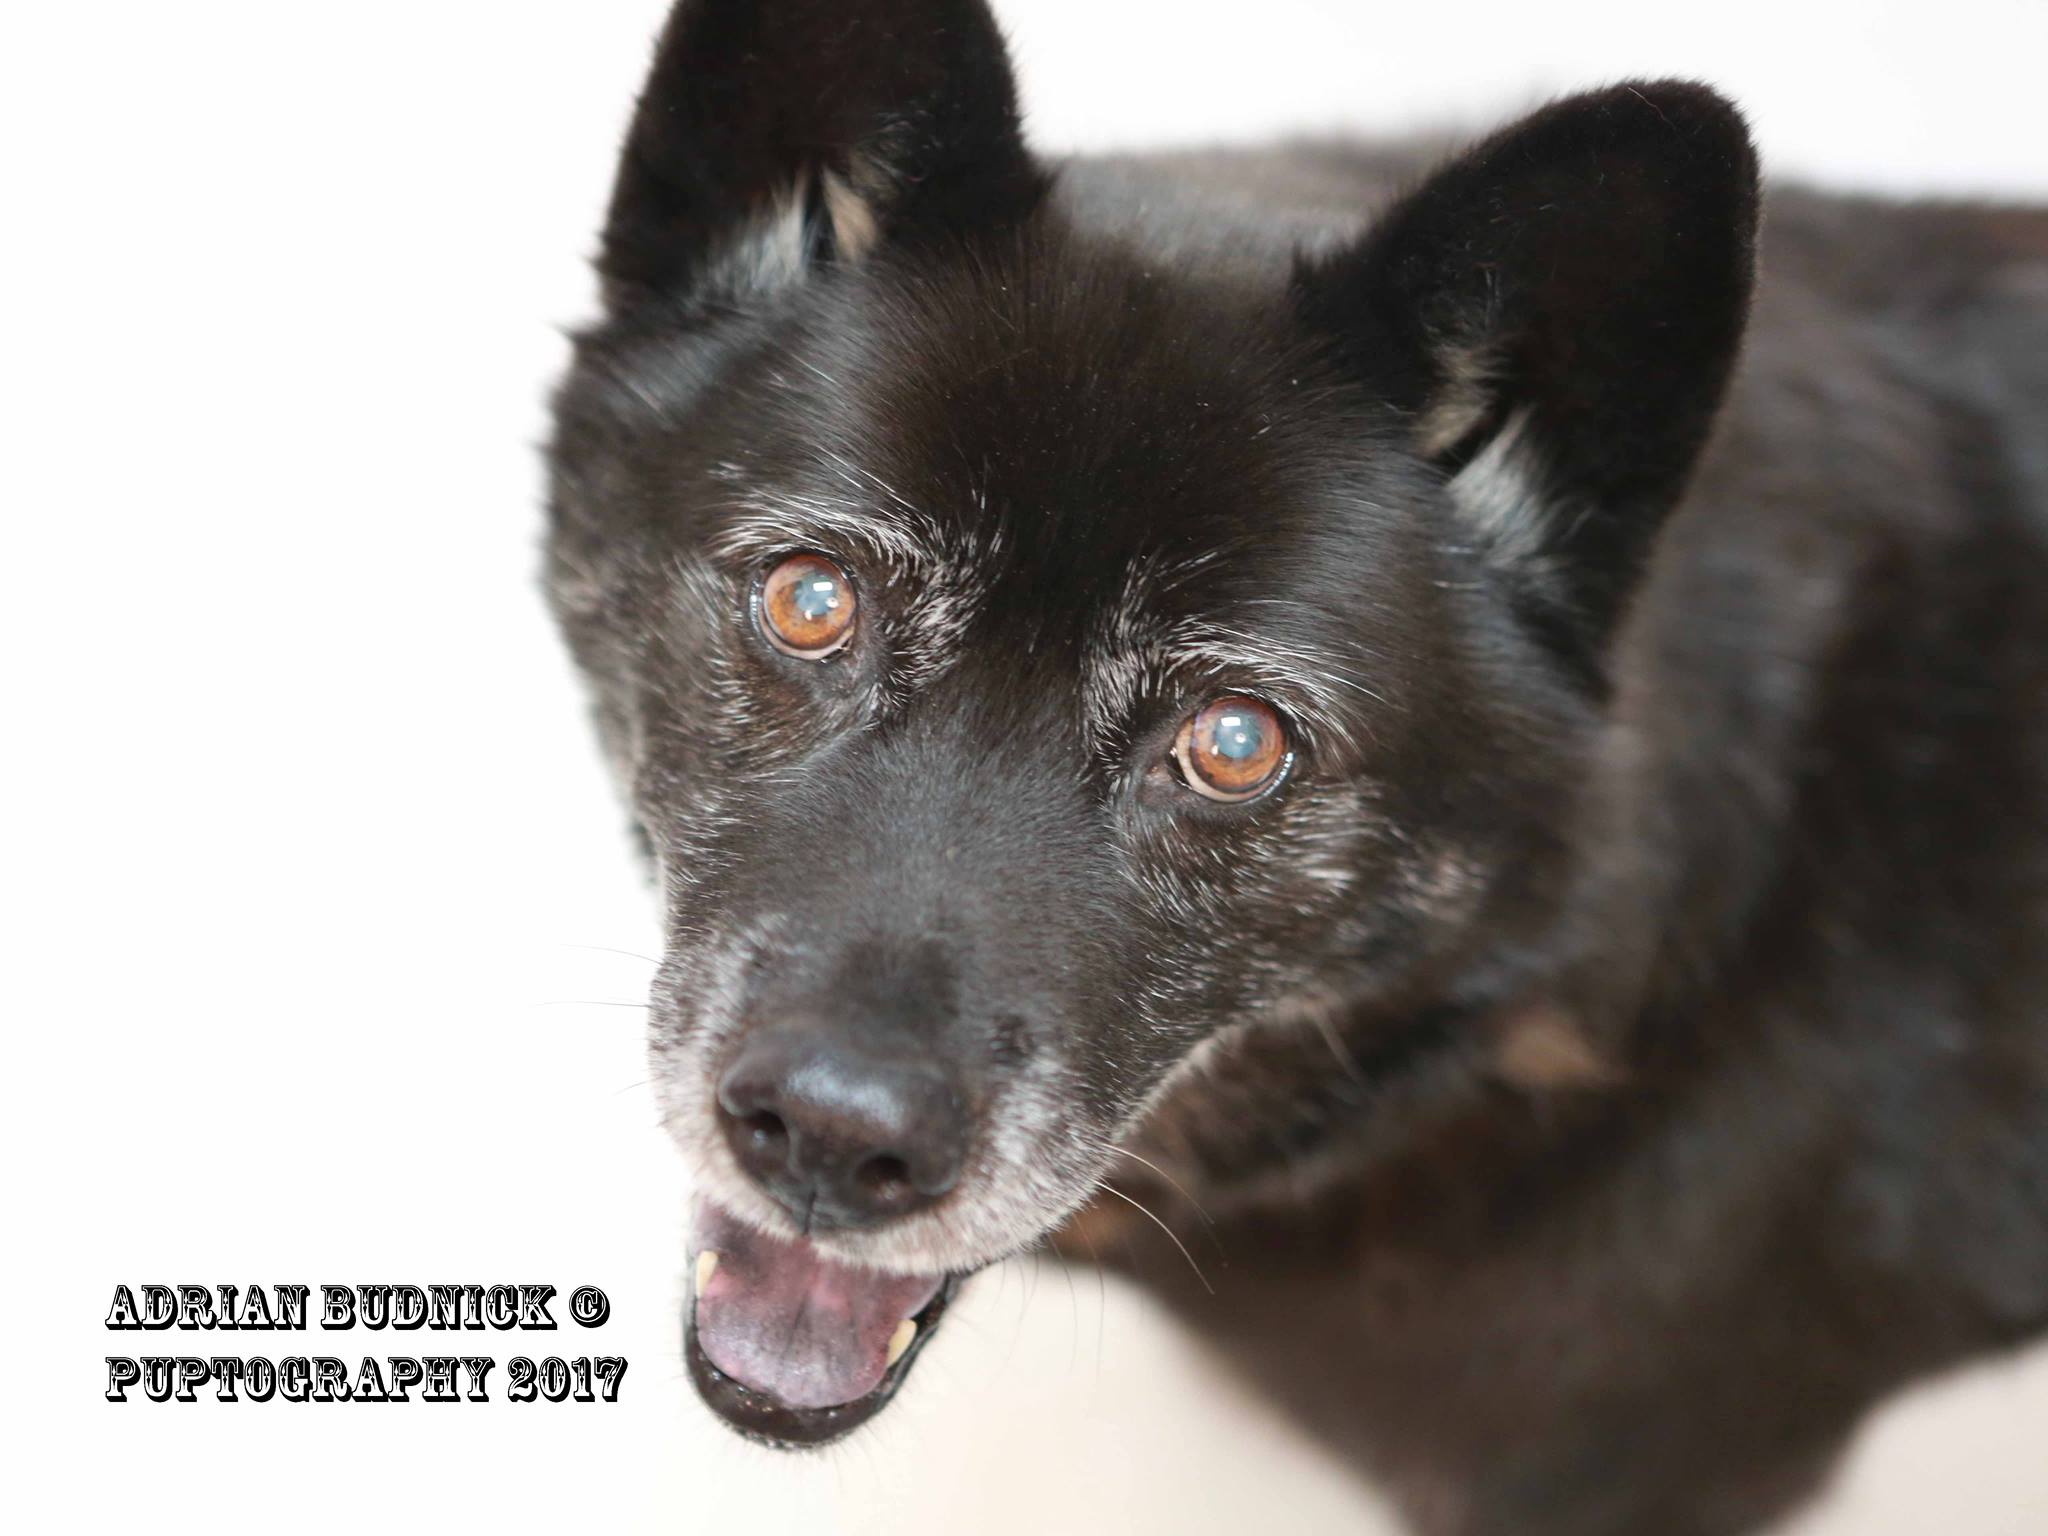 Jules A176523 is a 13 year old chow chow. She is available at Metro Nashville Animal Care and Control